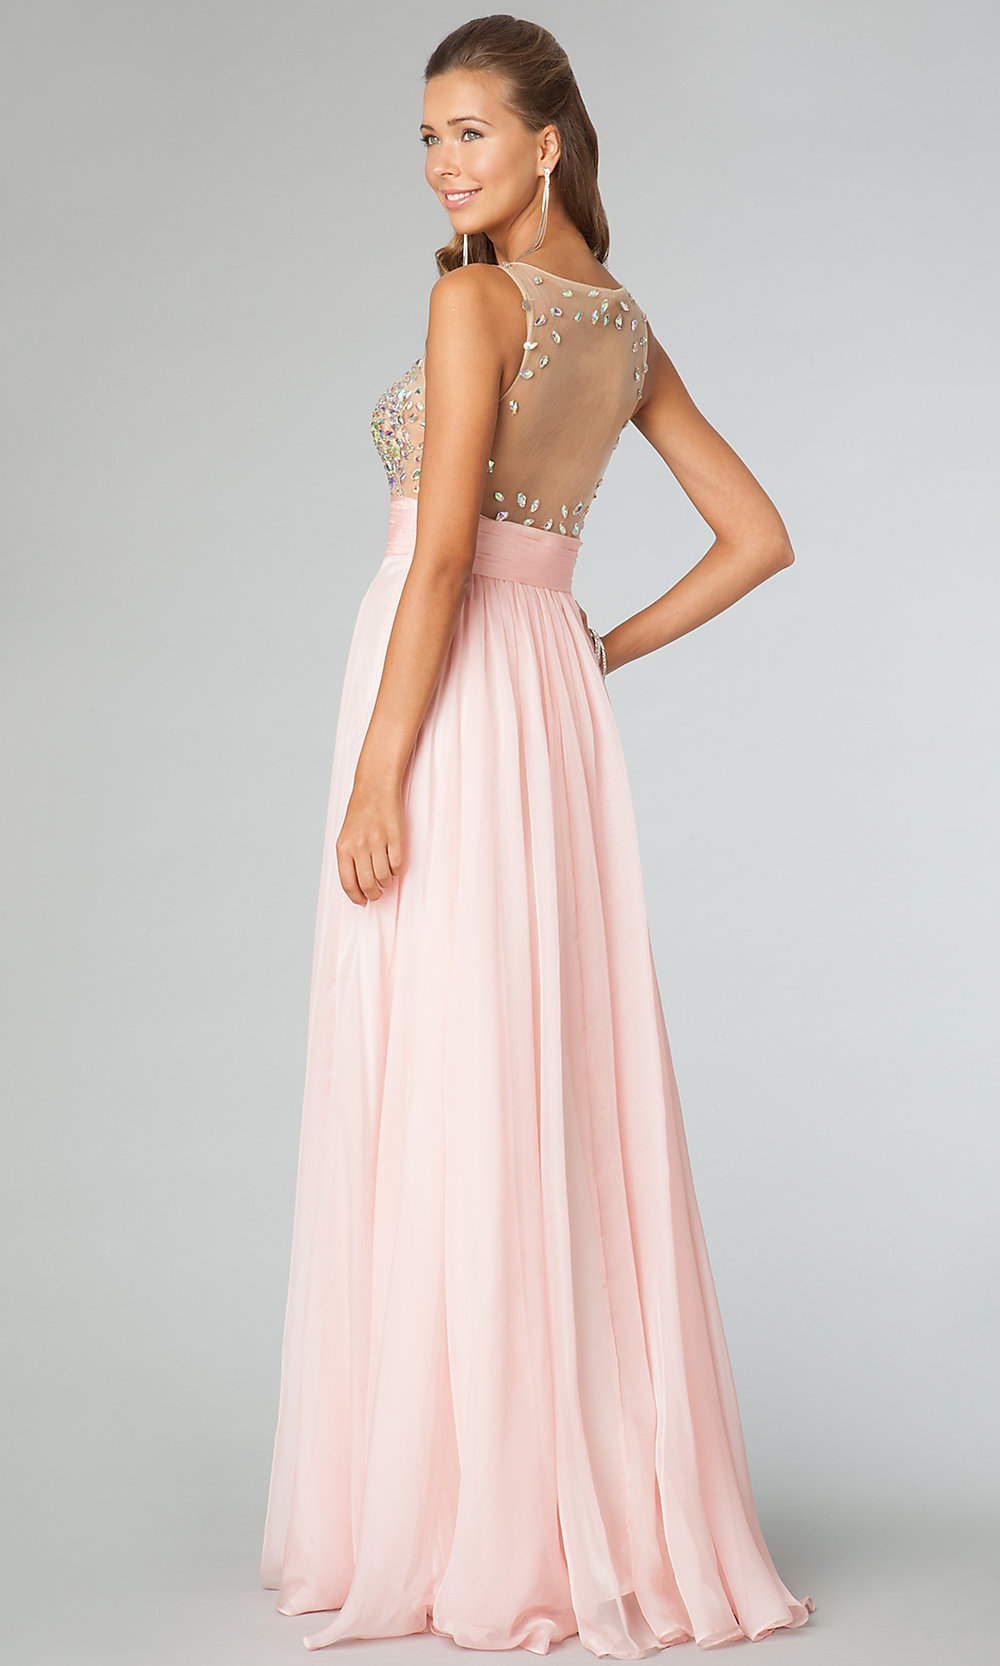 Sleeveless Illusion Beaded JVN Prom Gown - PromGirl